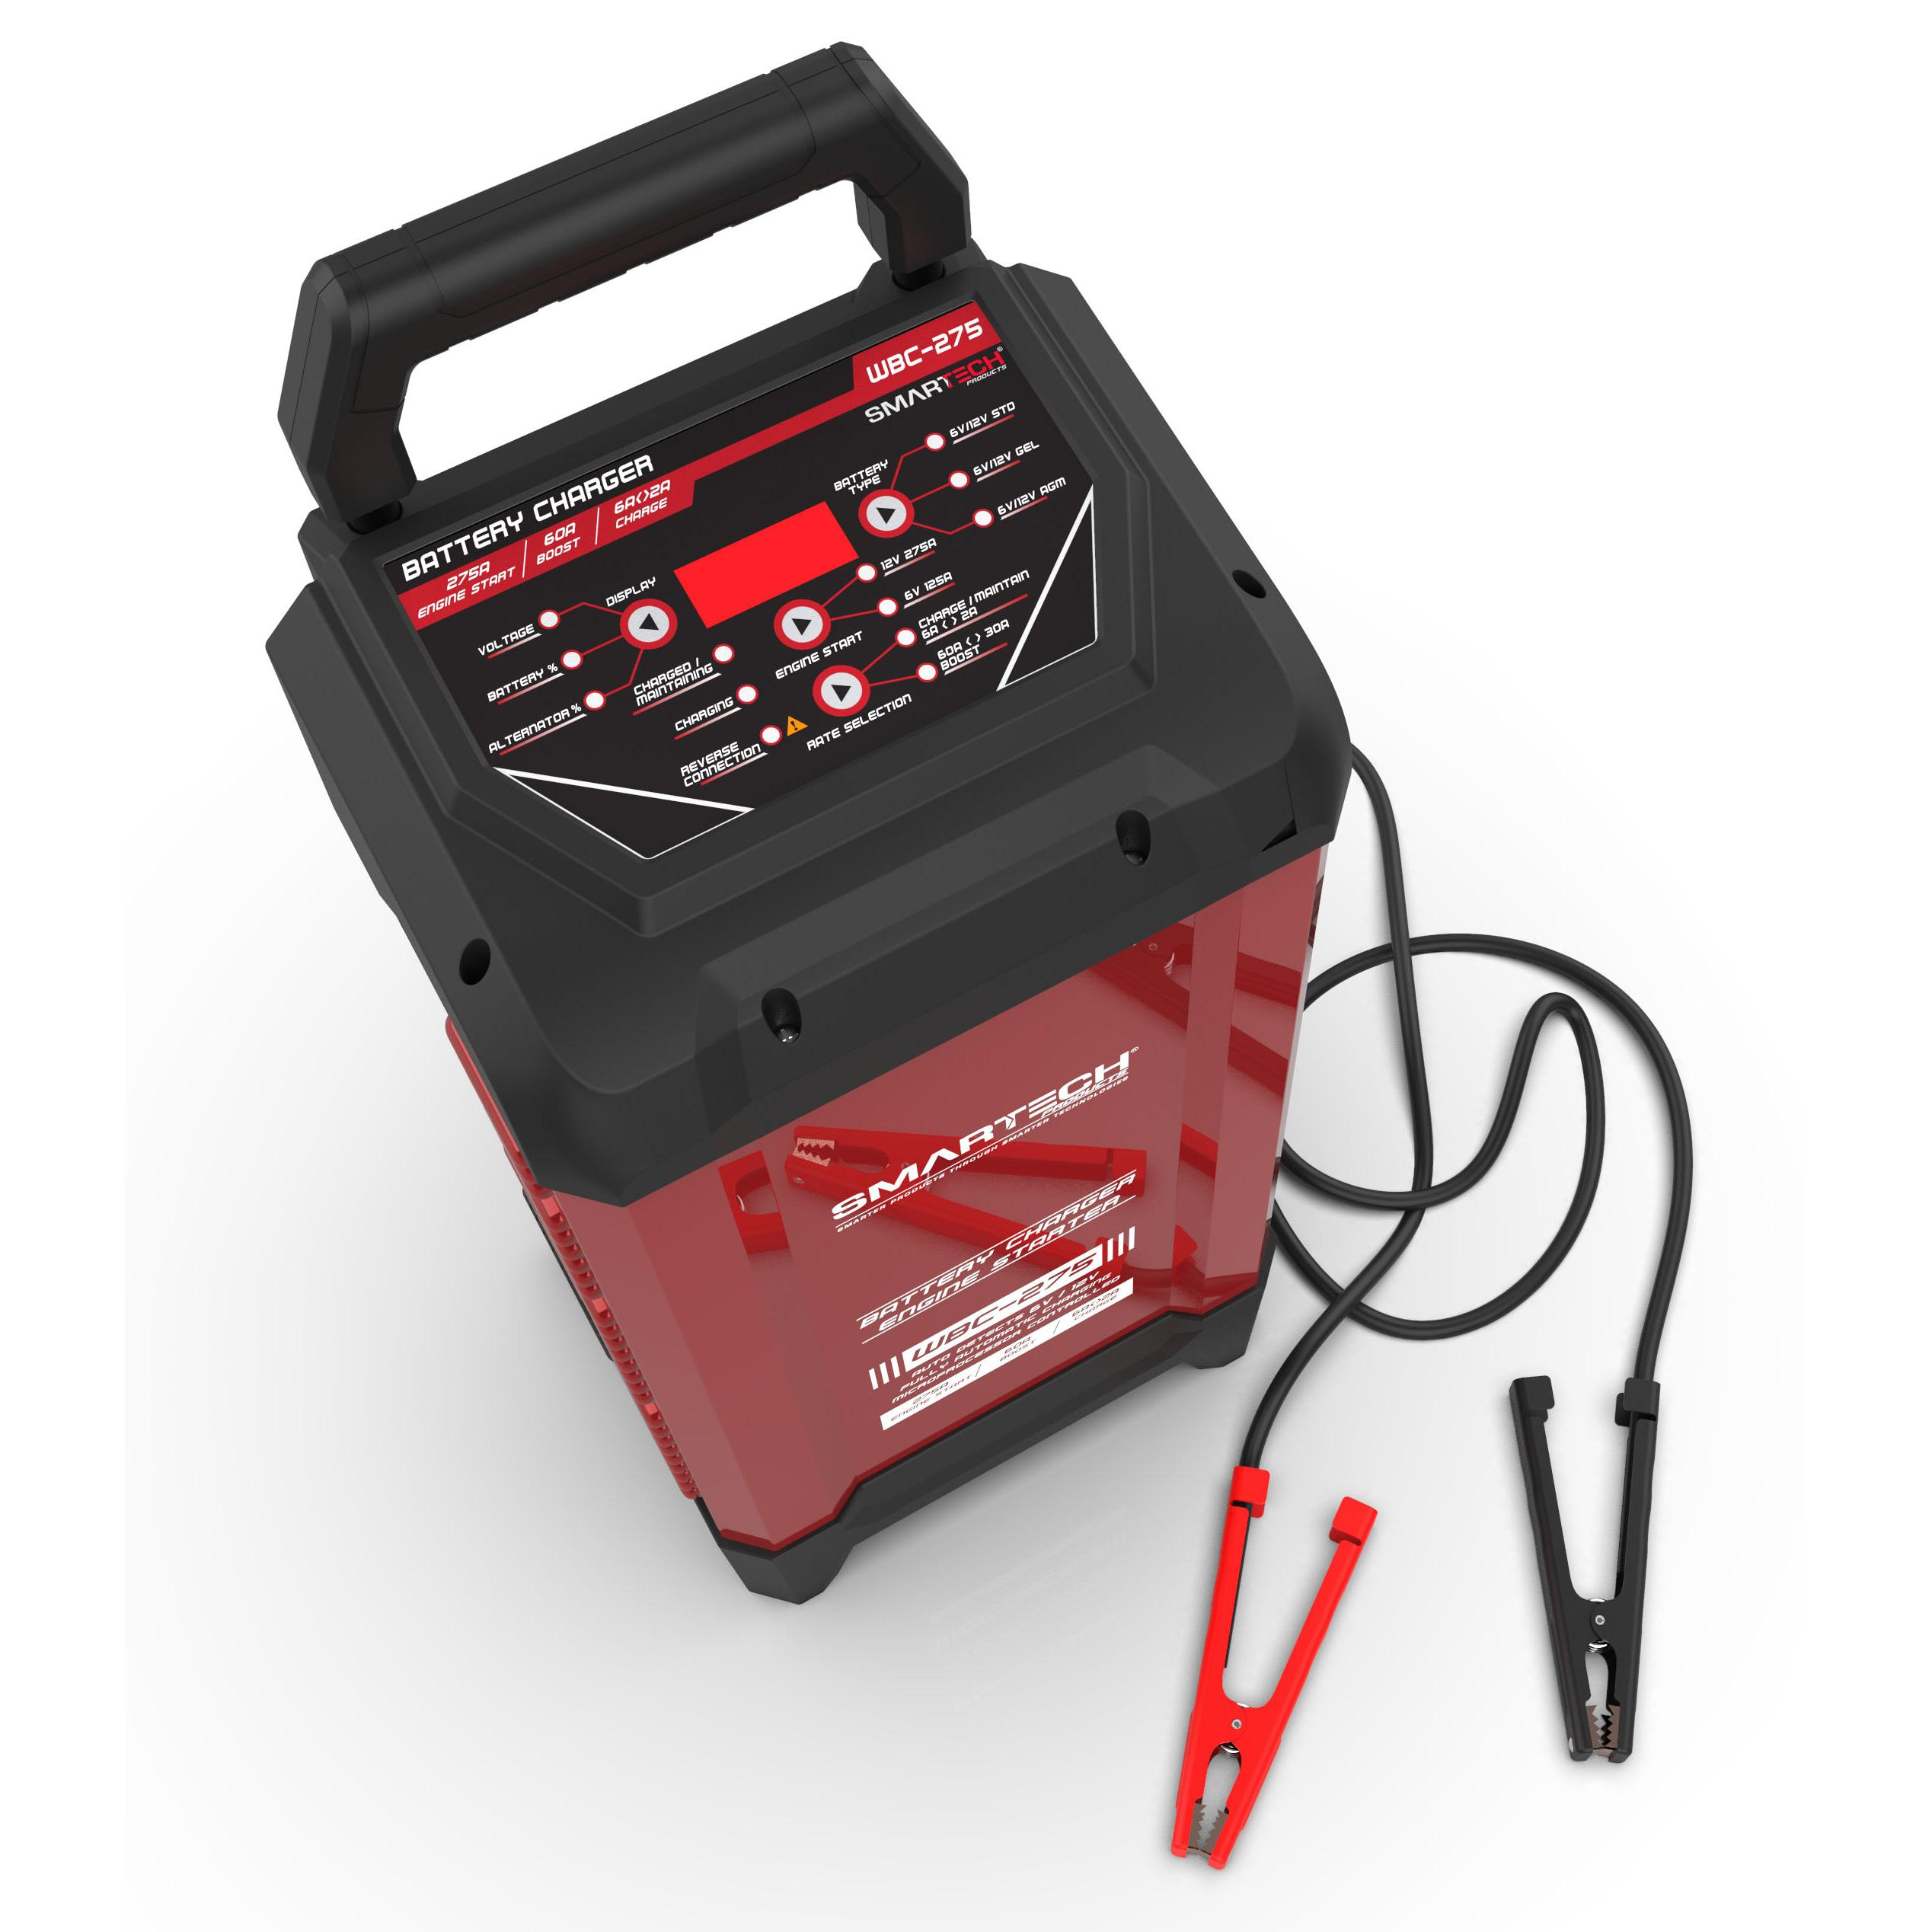 Smartech WBC 275 6V12V Wheel Automotive Battery Charger, Maintainer